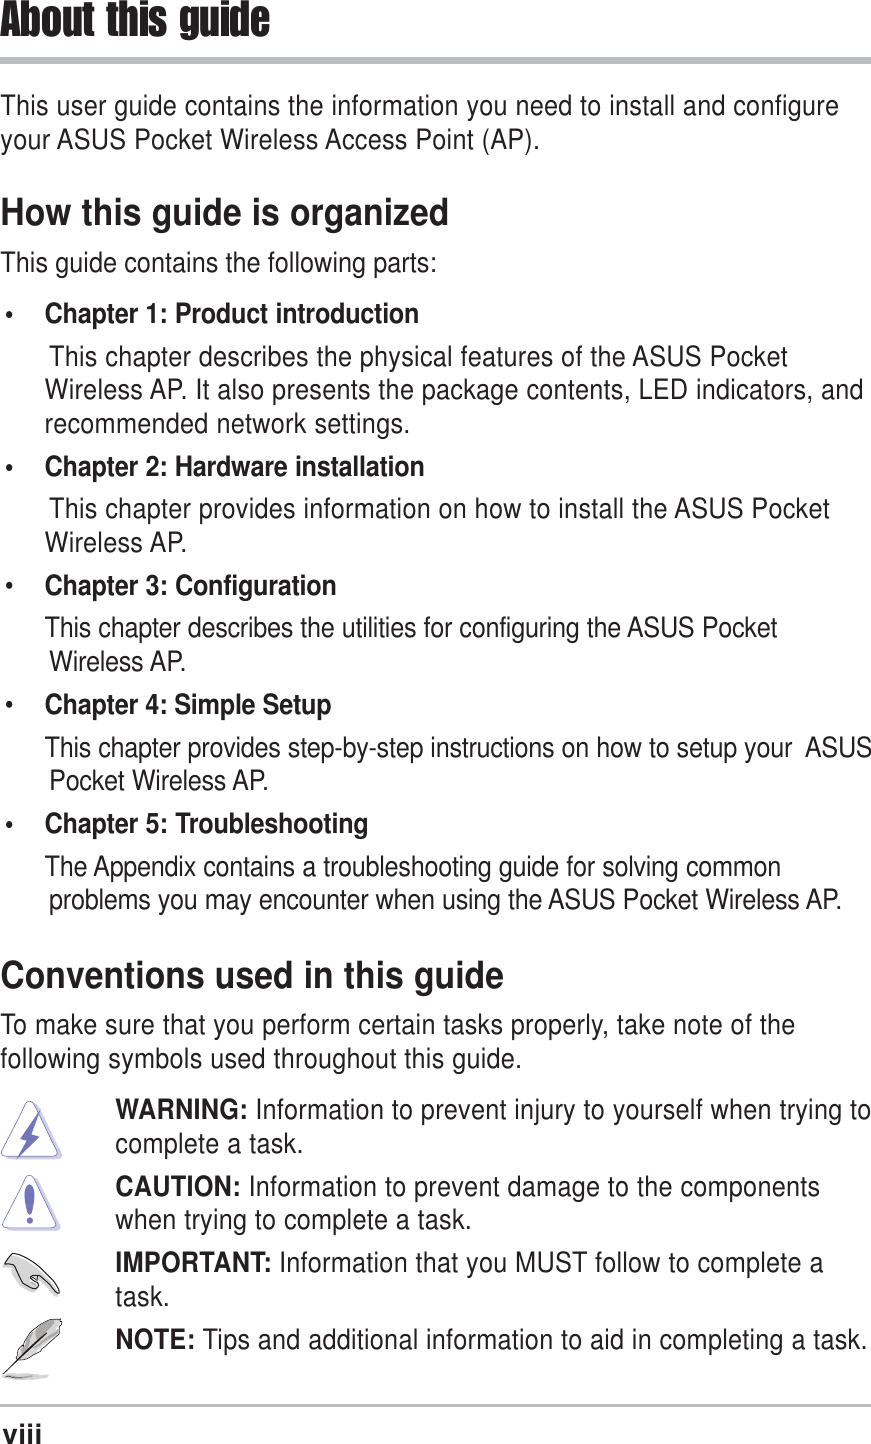 Computer troubleshooting guide images free troubleshooting examples asustek computer wl330g pocket wireless access point user manual page 6 of asustek computer wl330g pocket sciox Image collections